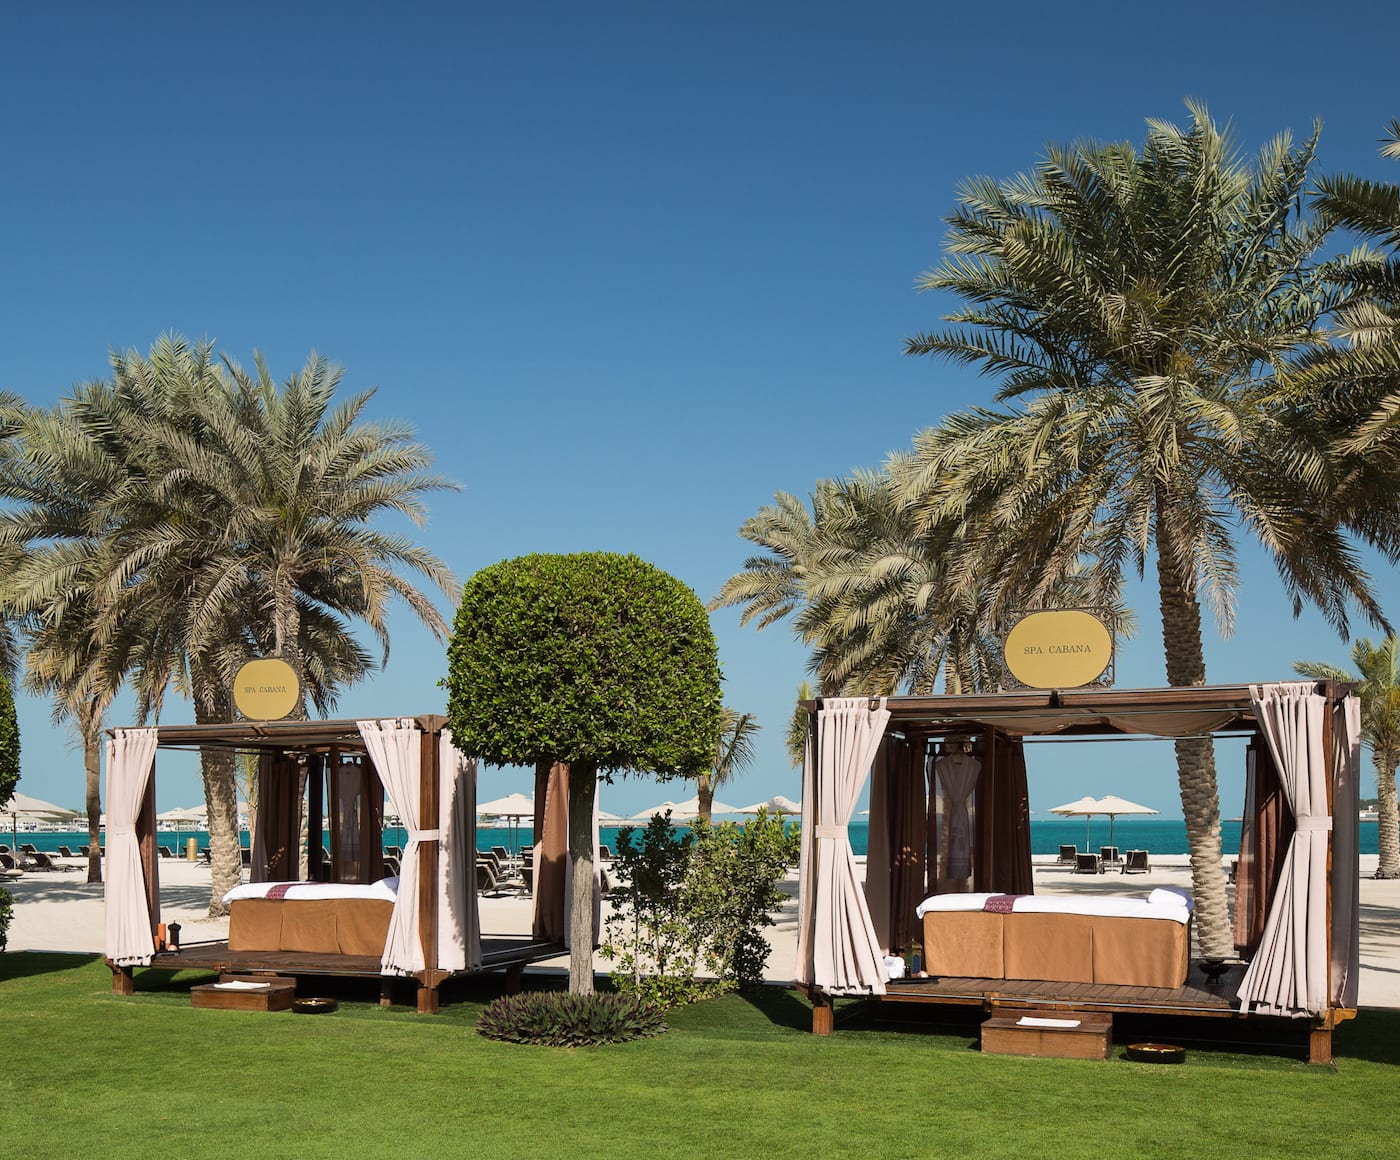 Spa Beach Cabanas, Emirates Palace